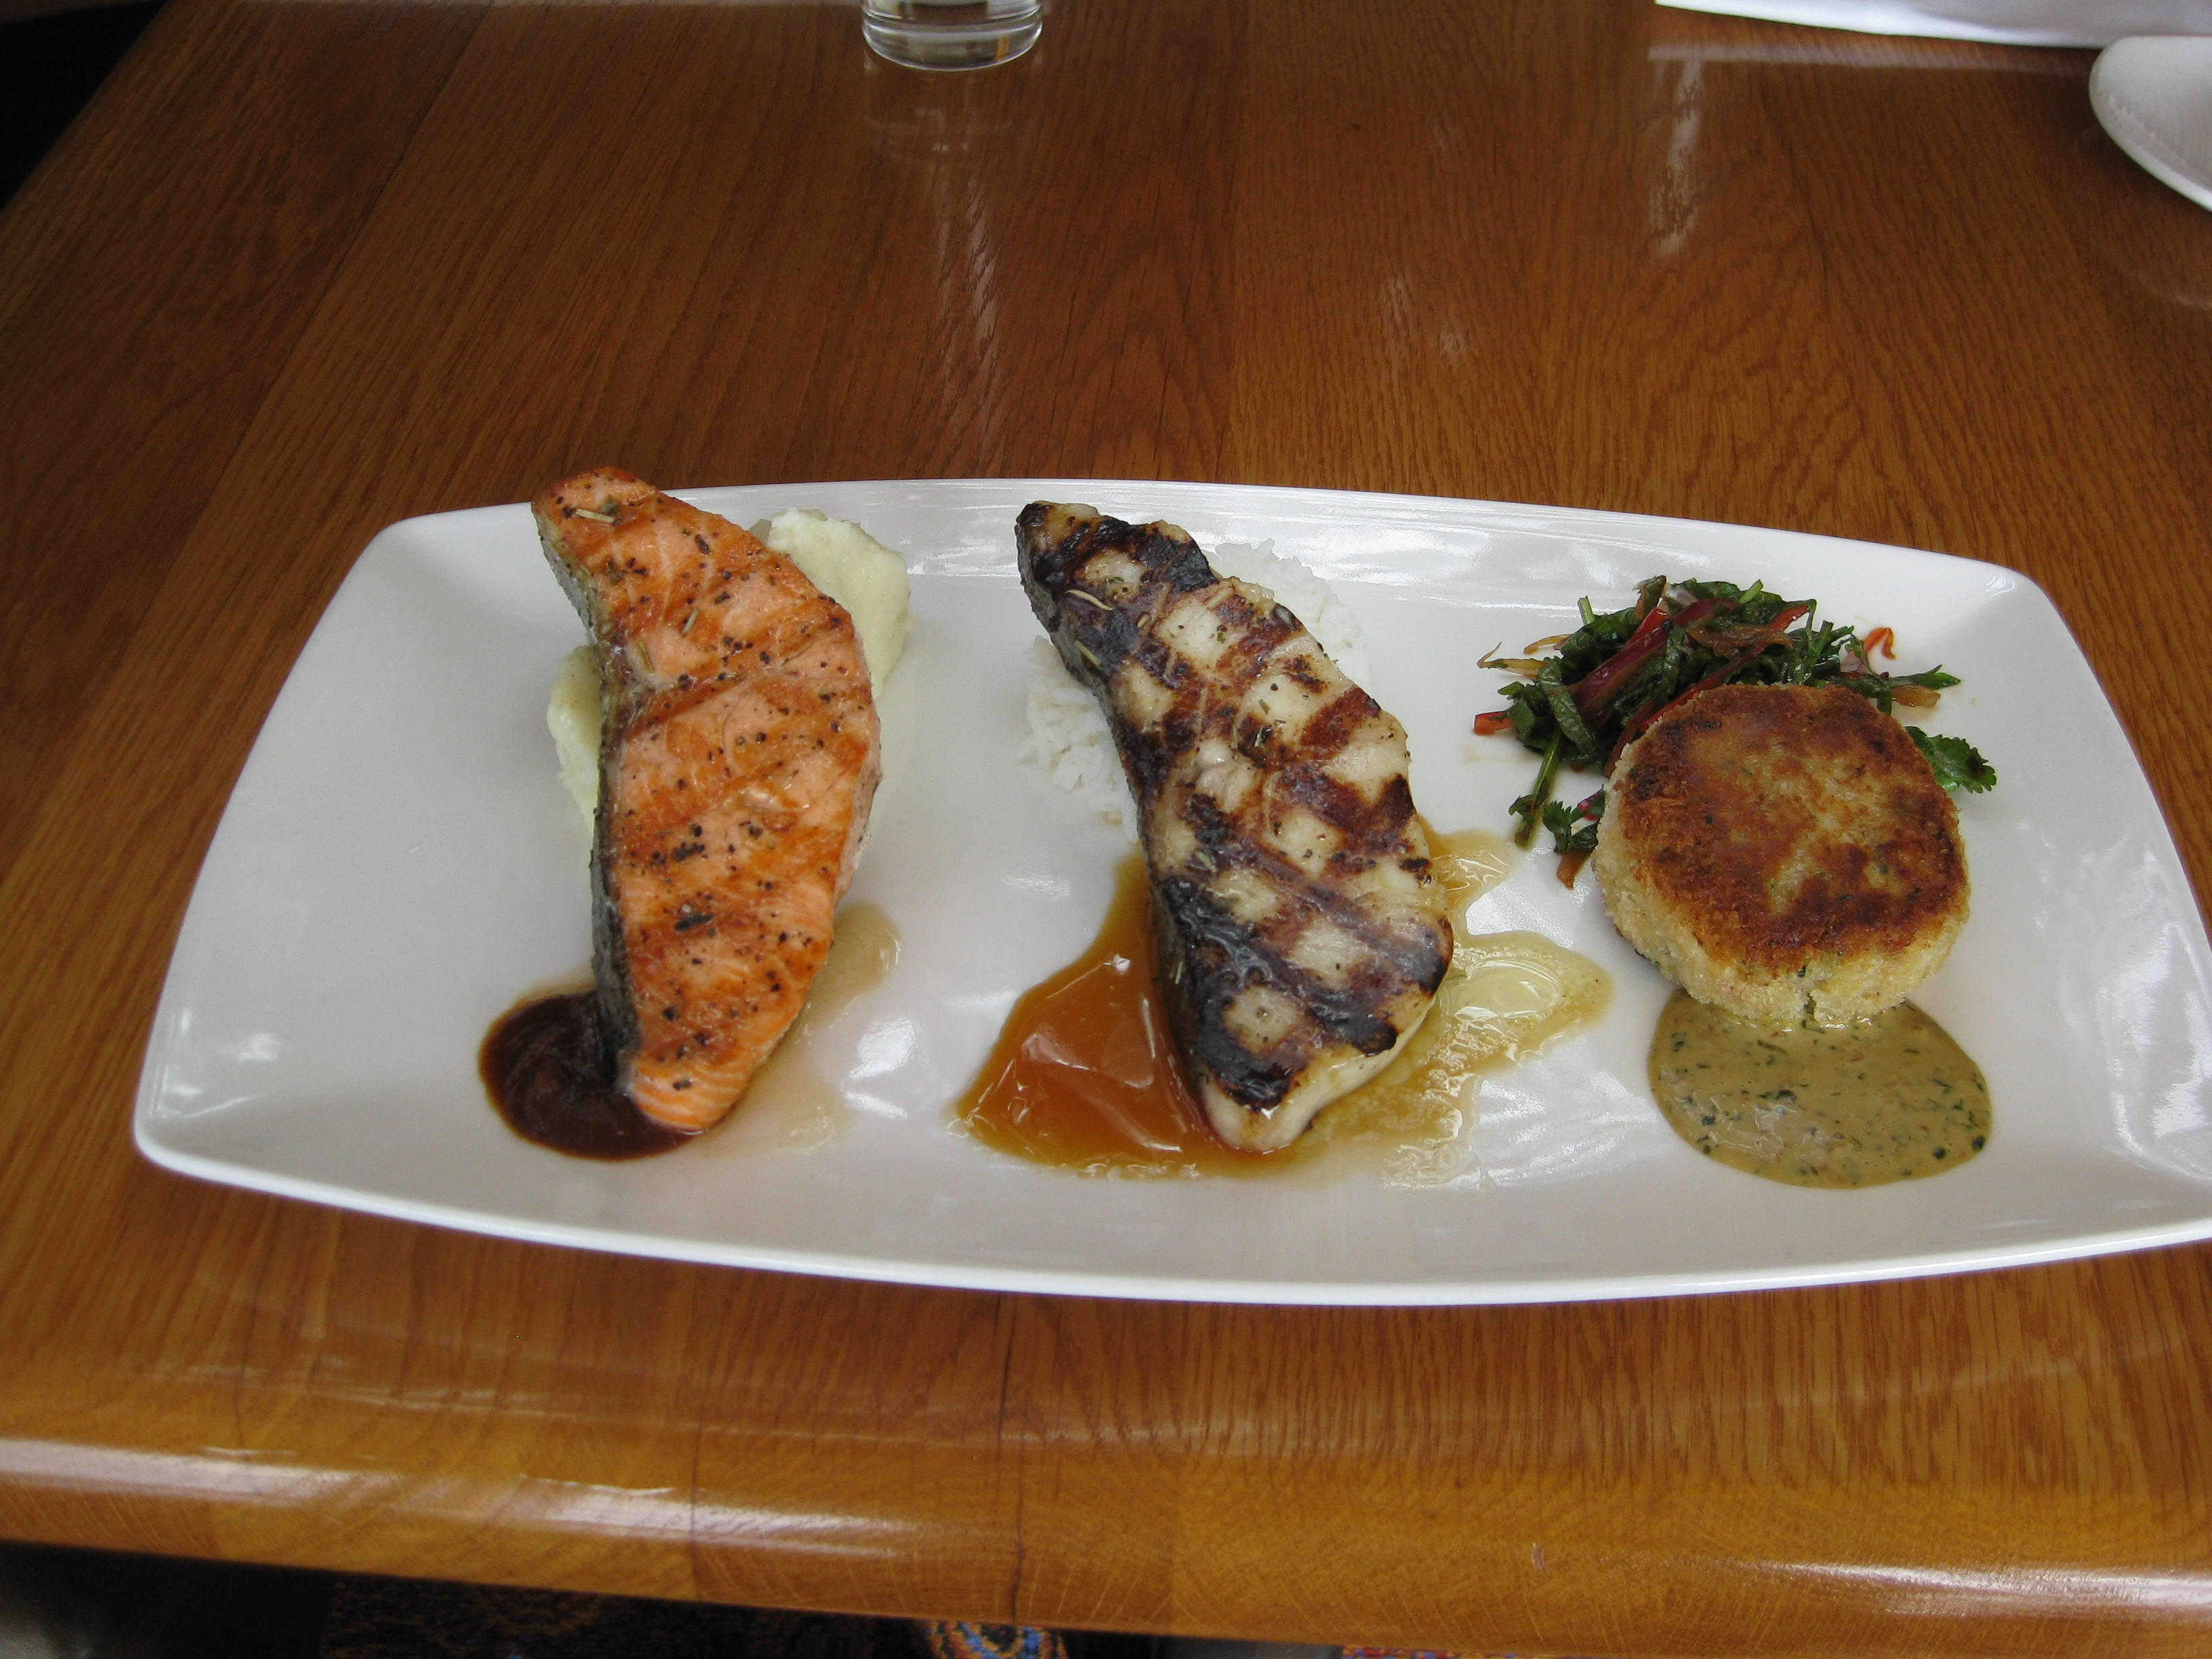 Classic Sampler at Ray's Boathouse Restaurant, Cafe & Catering